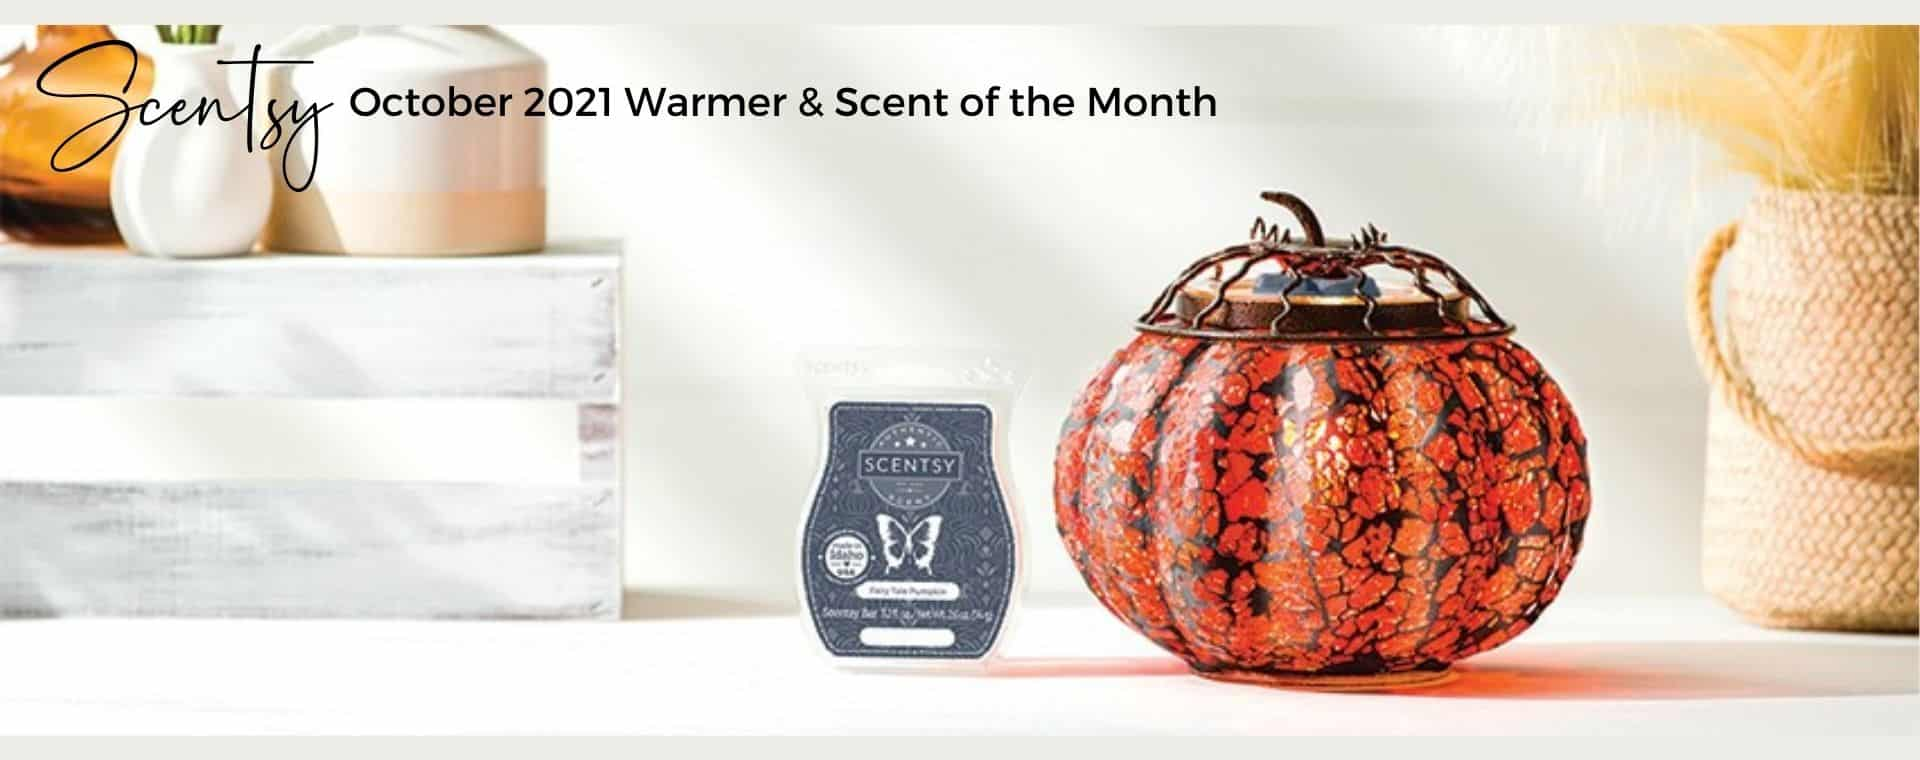 October 2021 Warmer Scent of the Month Mosaic Pumpkin